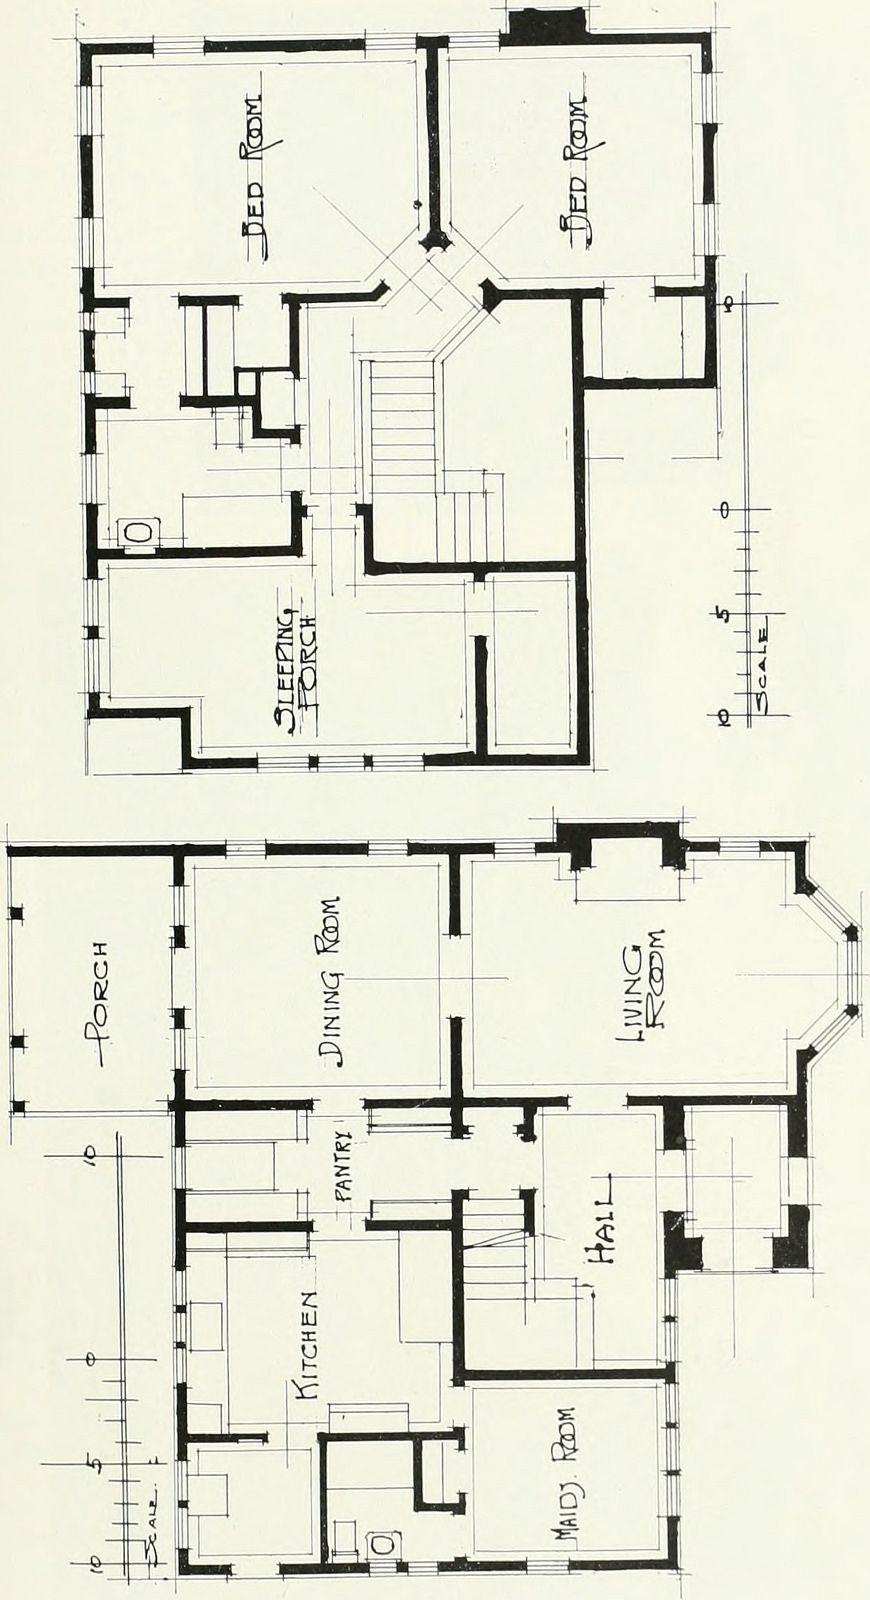 Image From Page 214 Of Architect And Engineer 1905 Vintage House Plans Architectural House Plans House Plans